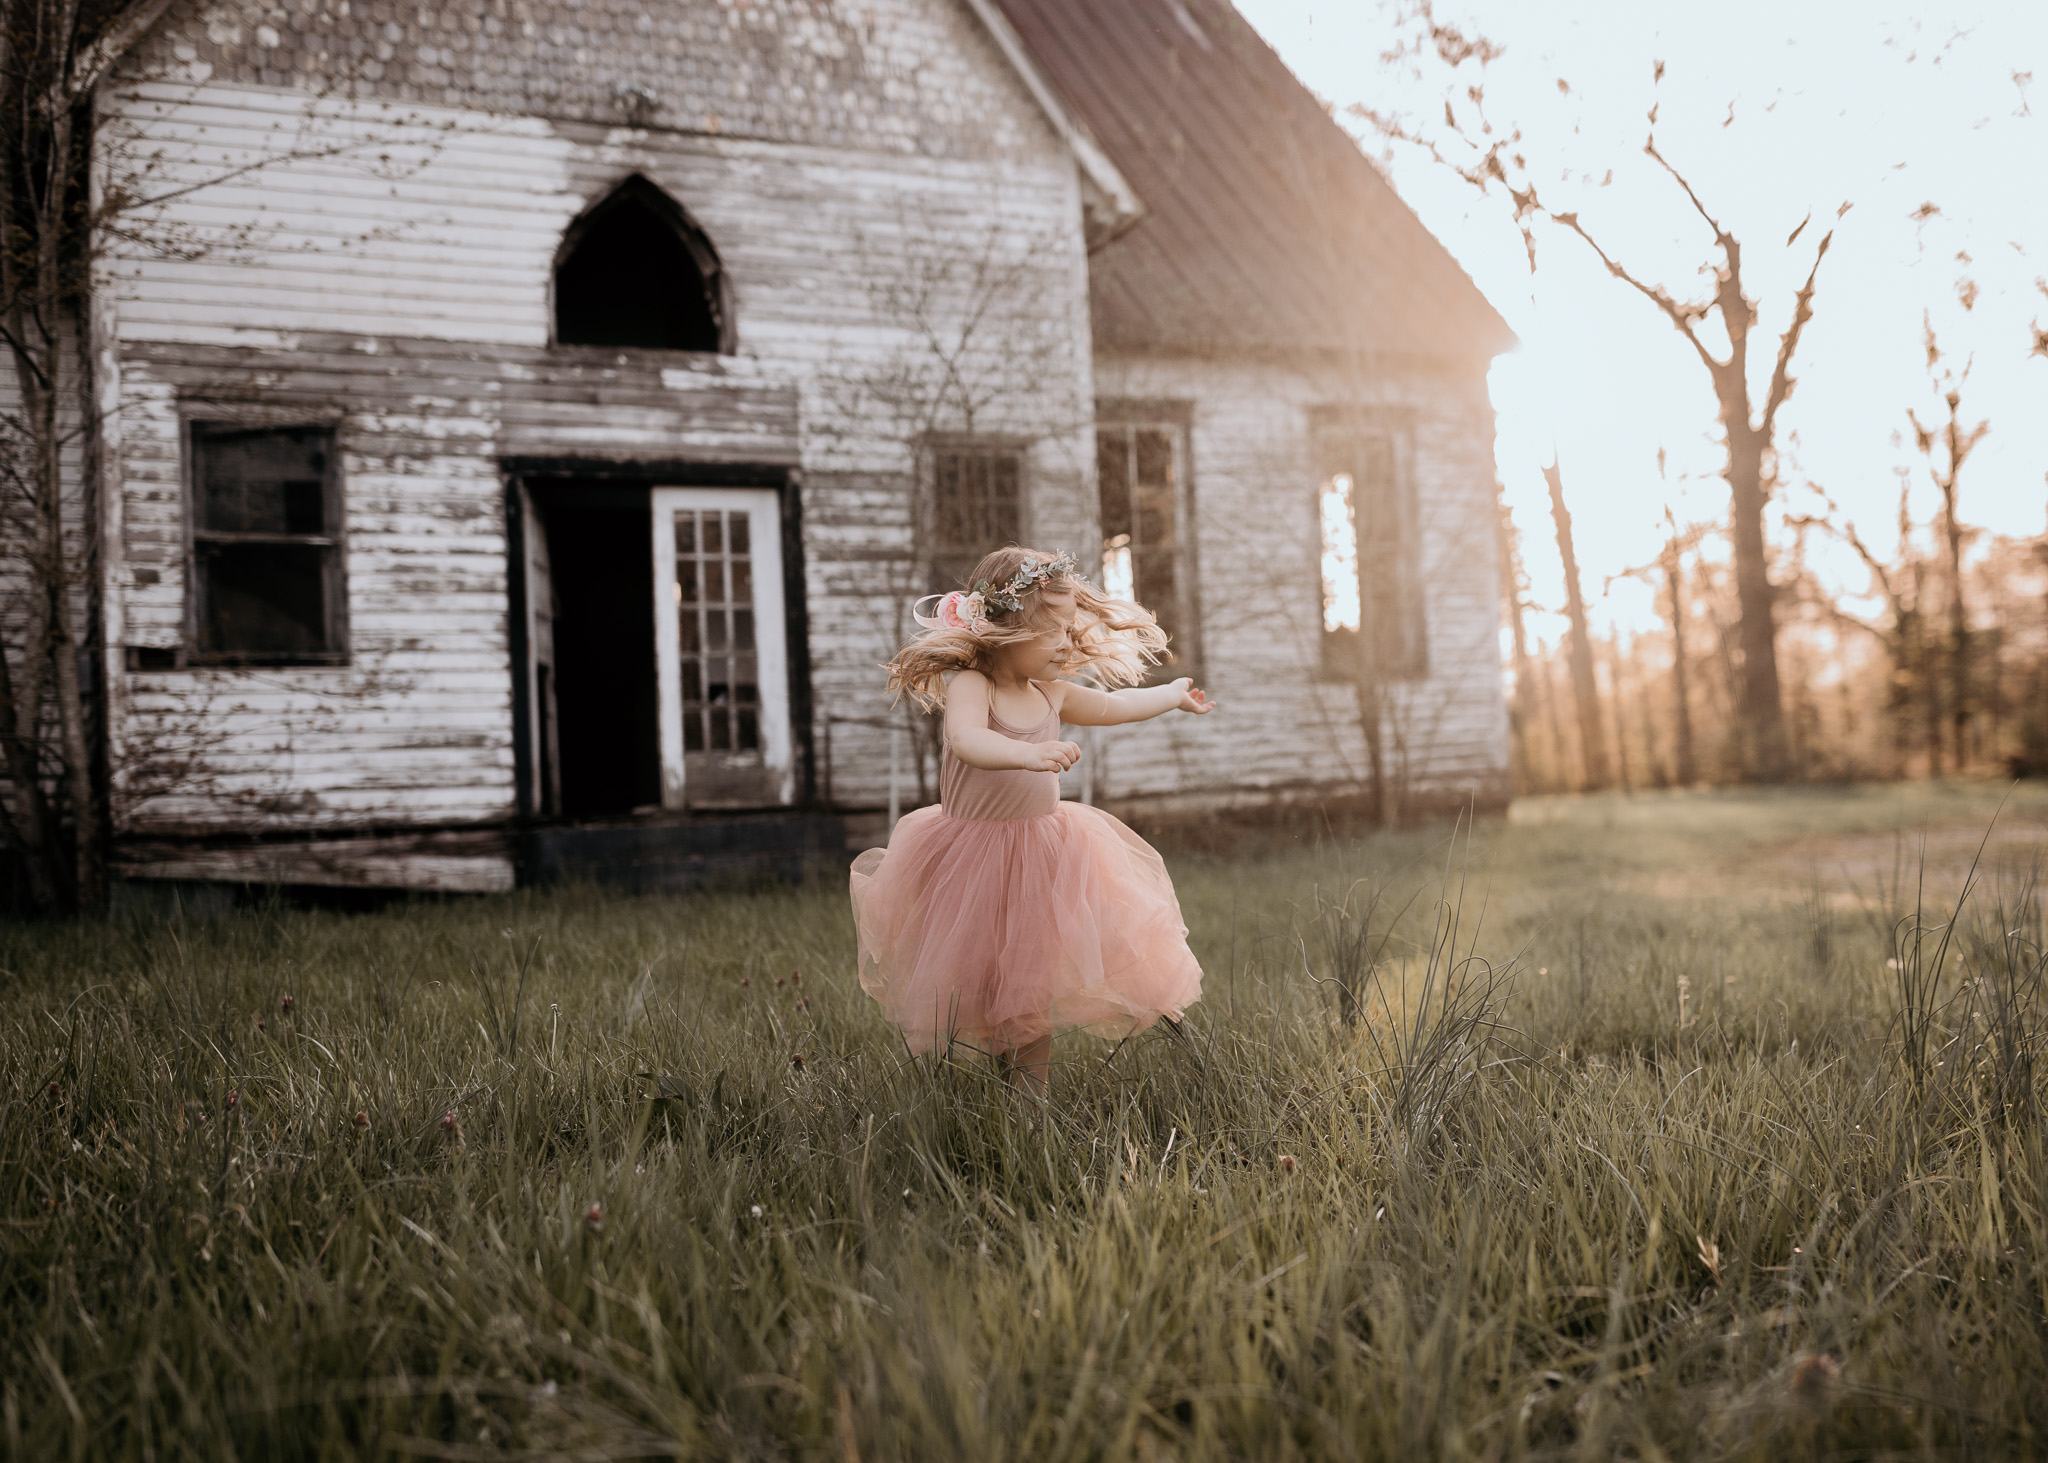 Young Girl Twirling in Field